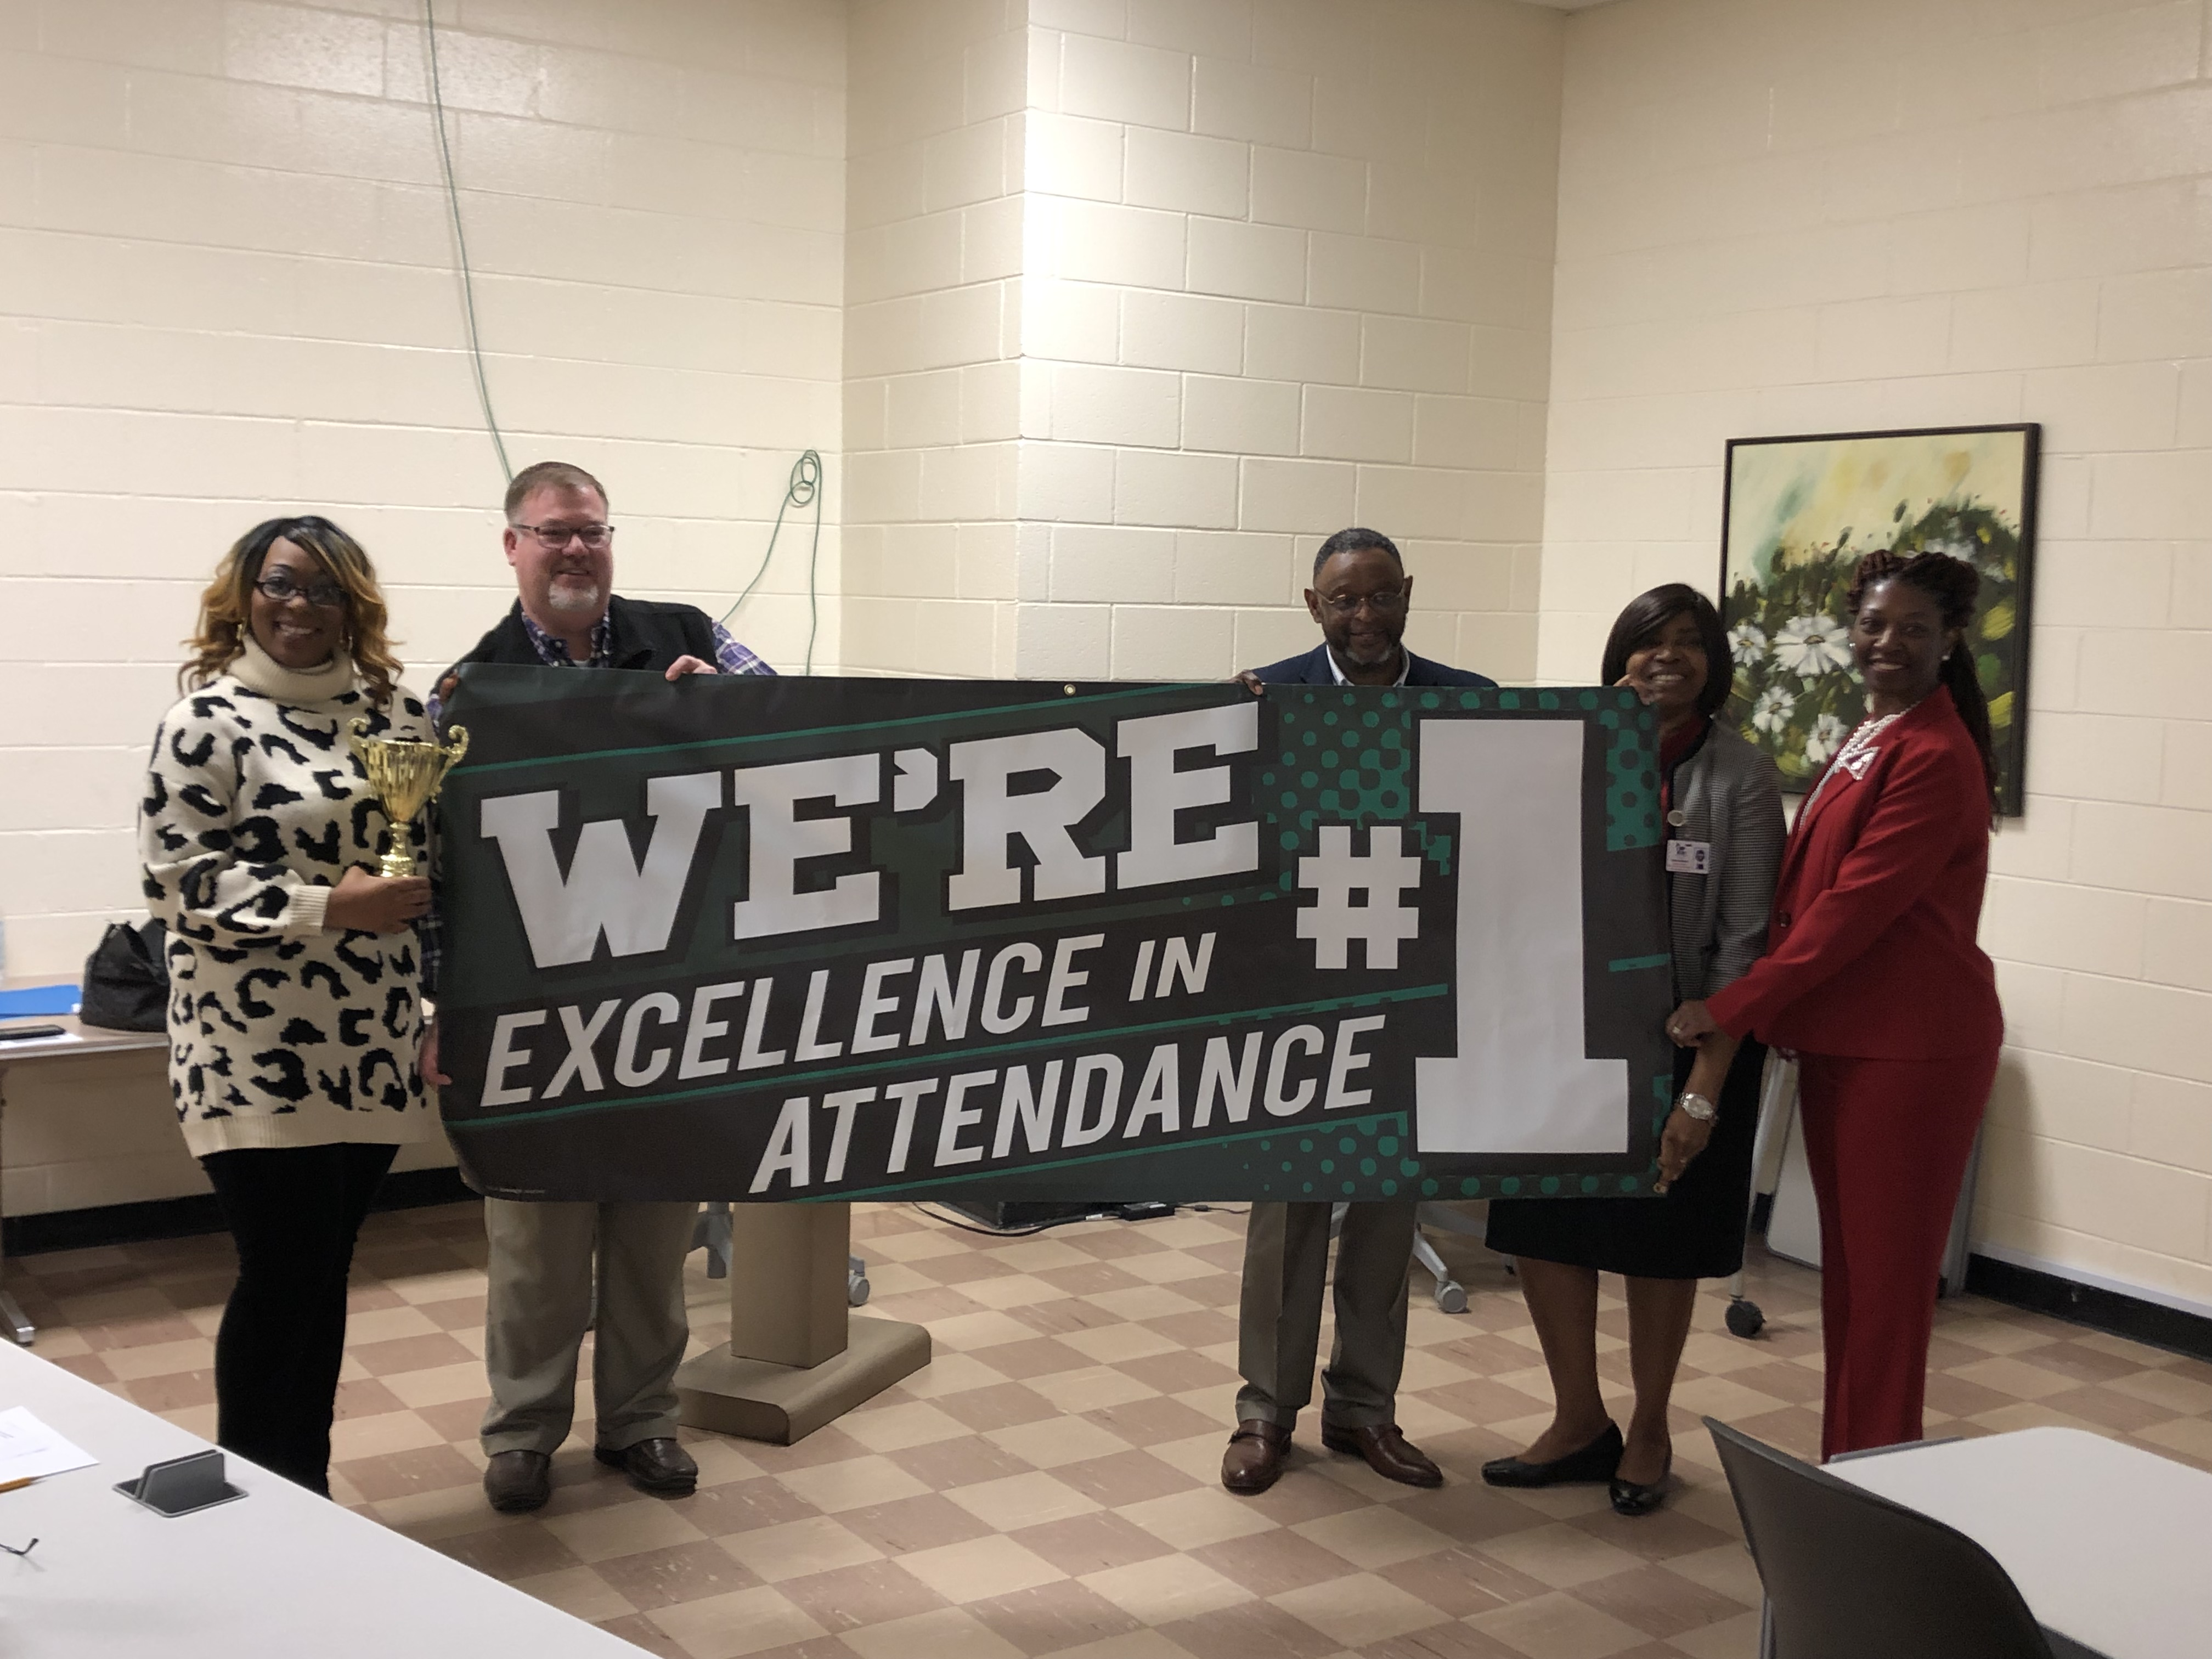 Photo with William Martin Middle School Admin Staff Celebrating Attendance Award